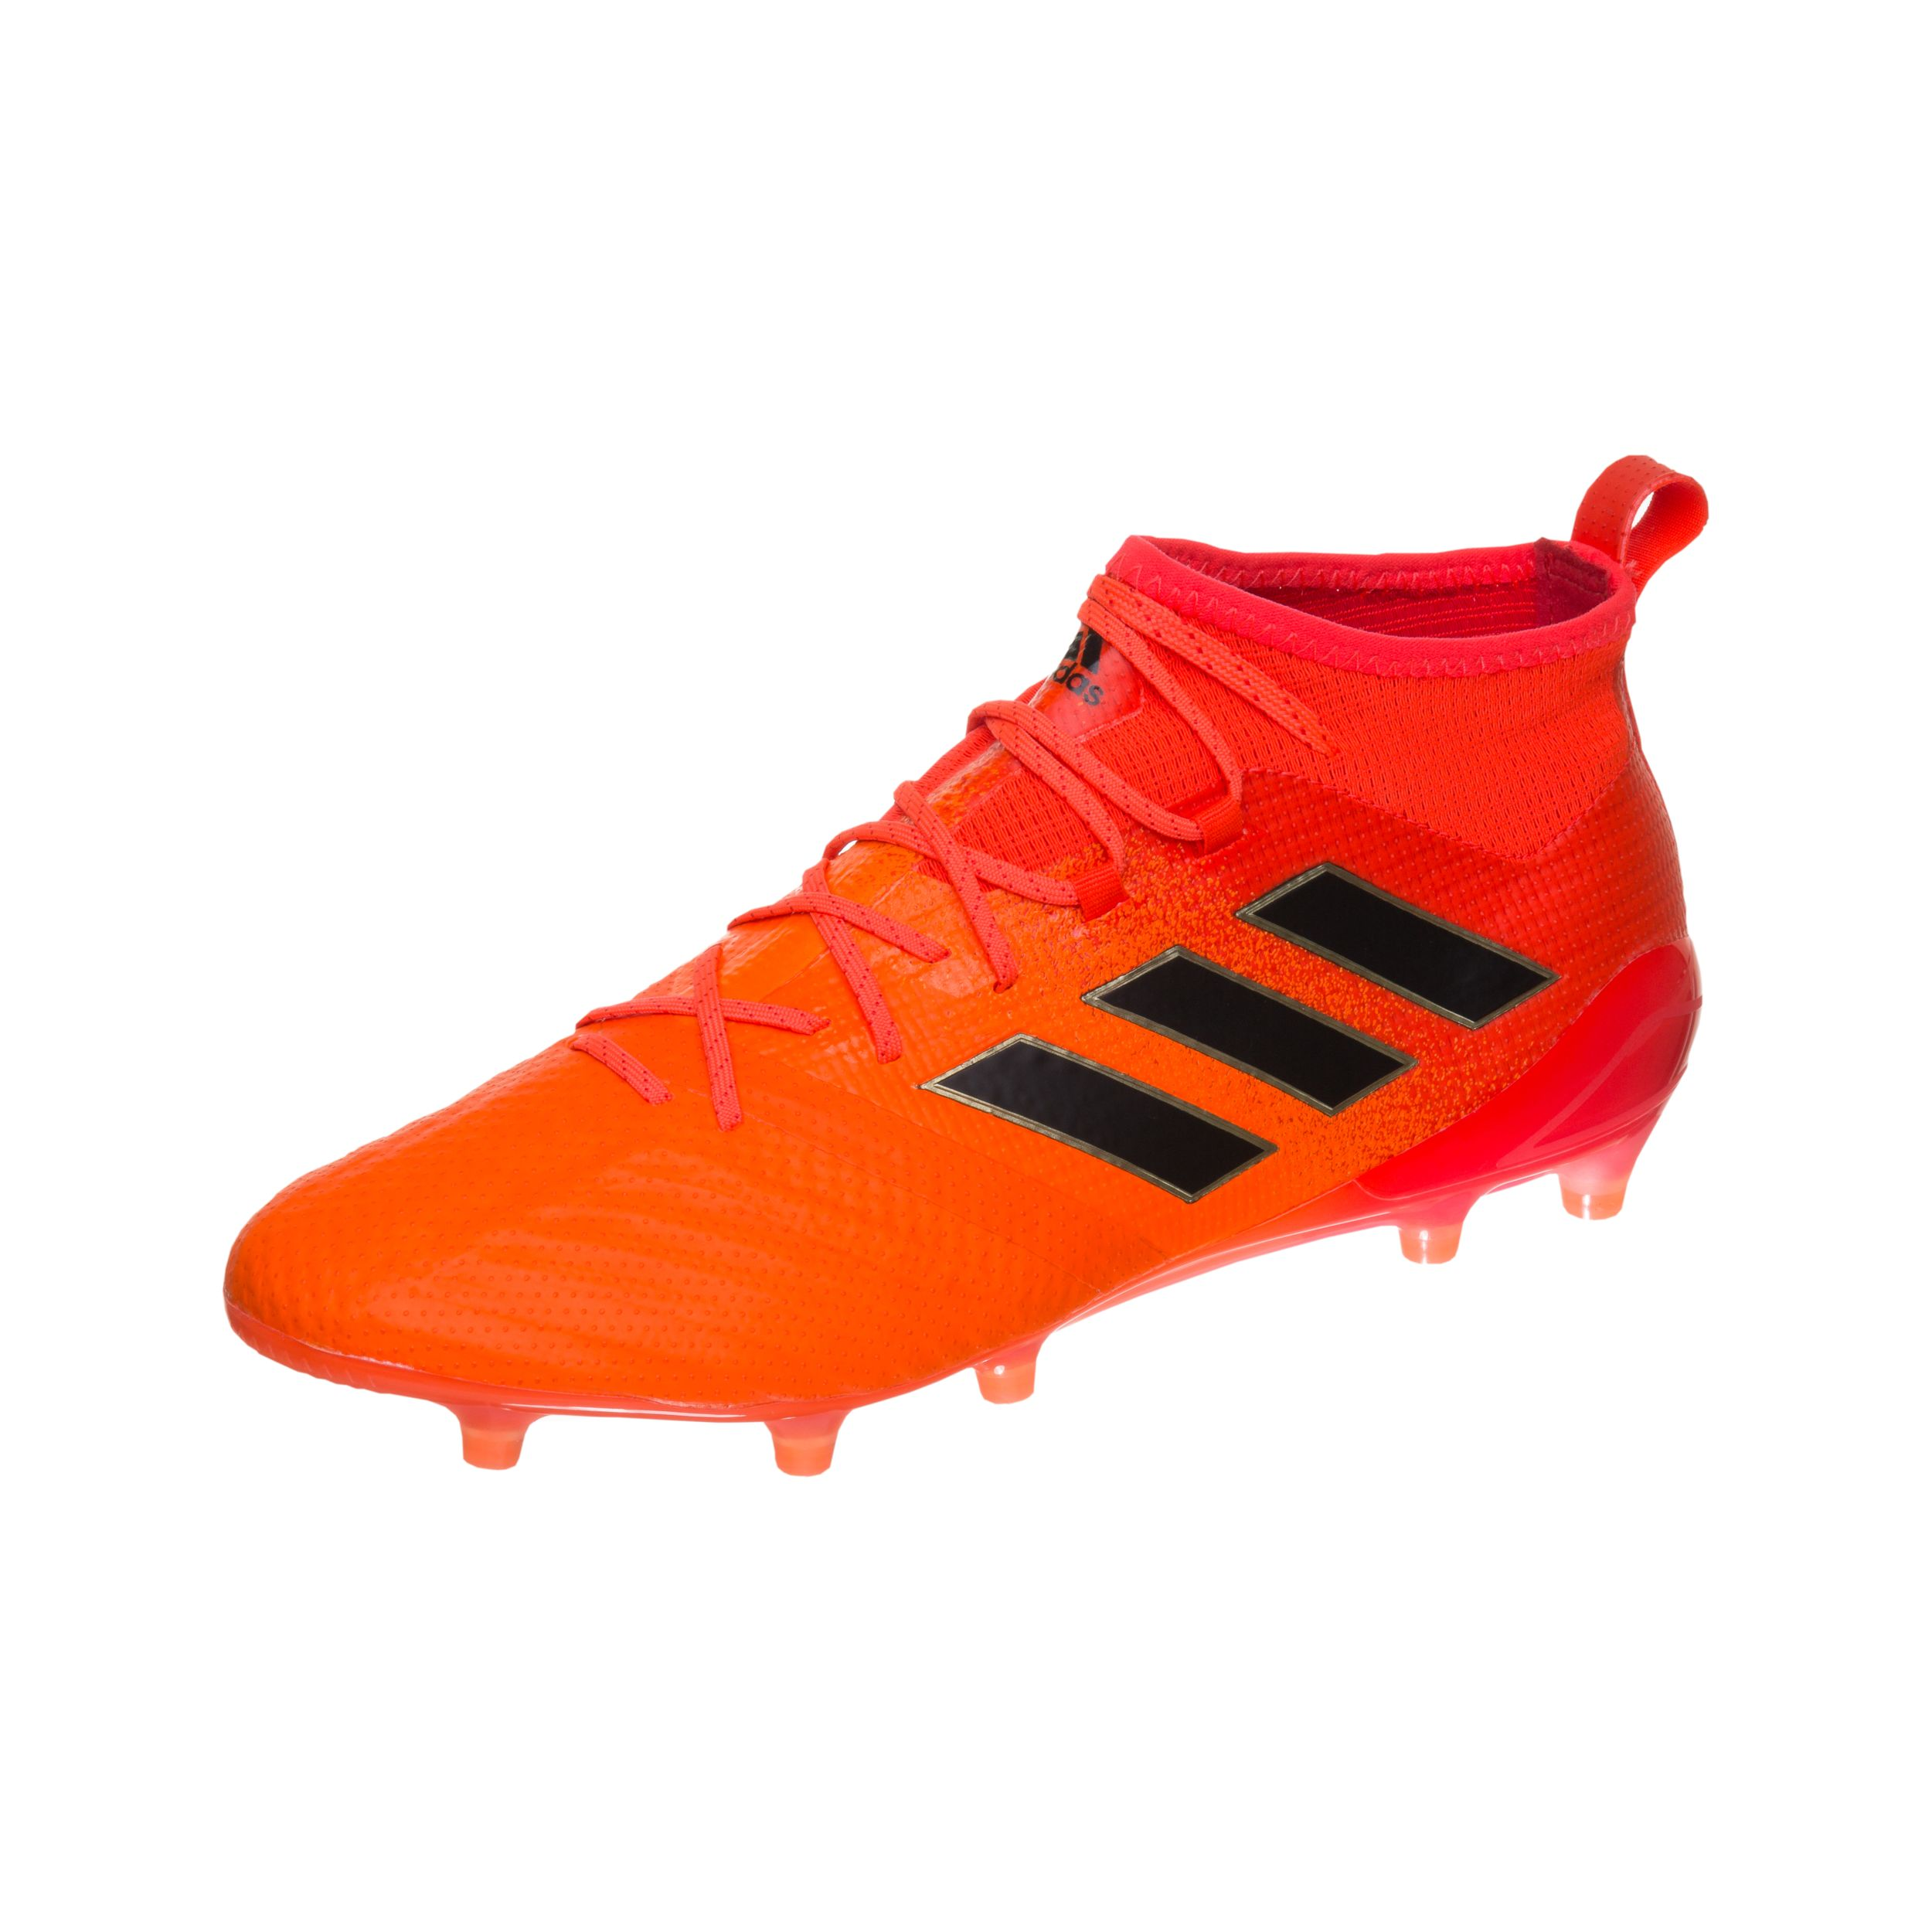 adidas fu ballschuhe ace 17 1 fg orange herren s77036. Black Bedroom Furniture Sets. Home Design Ideas